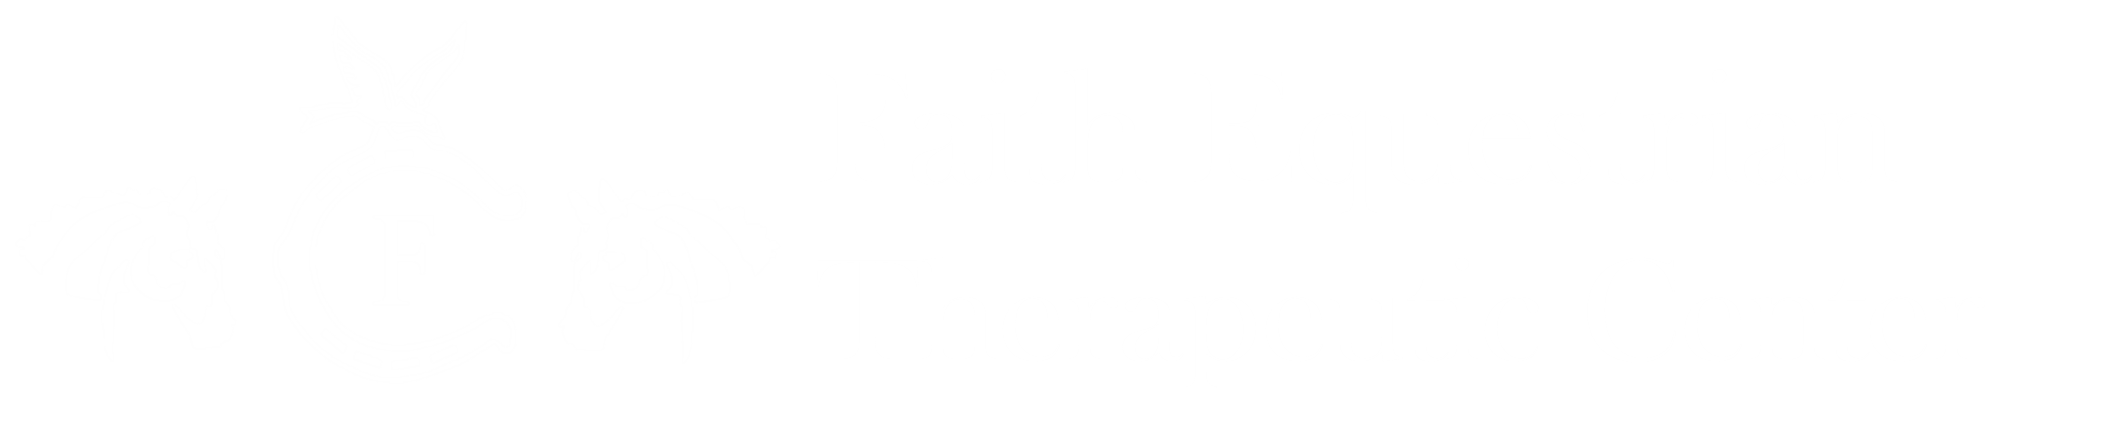 Faith Equestrian Therapeutic Center